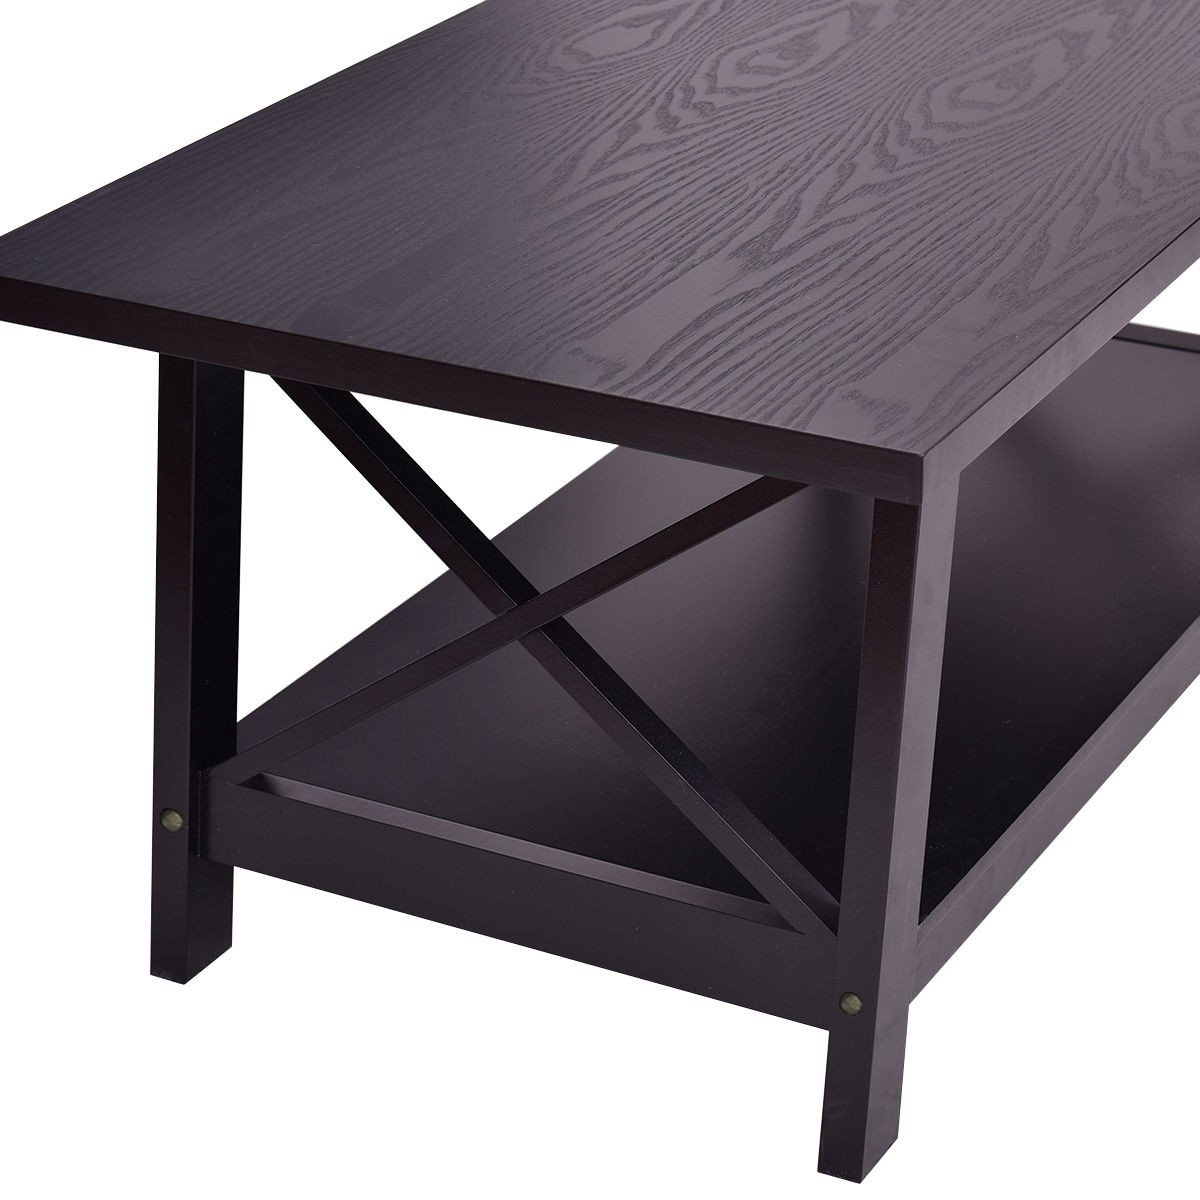 Durable Rectangular Coffee Table With Storage Shelf By Choice Products